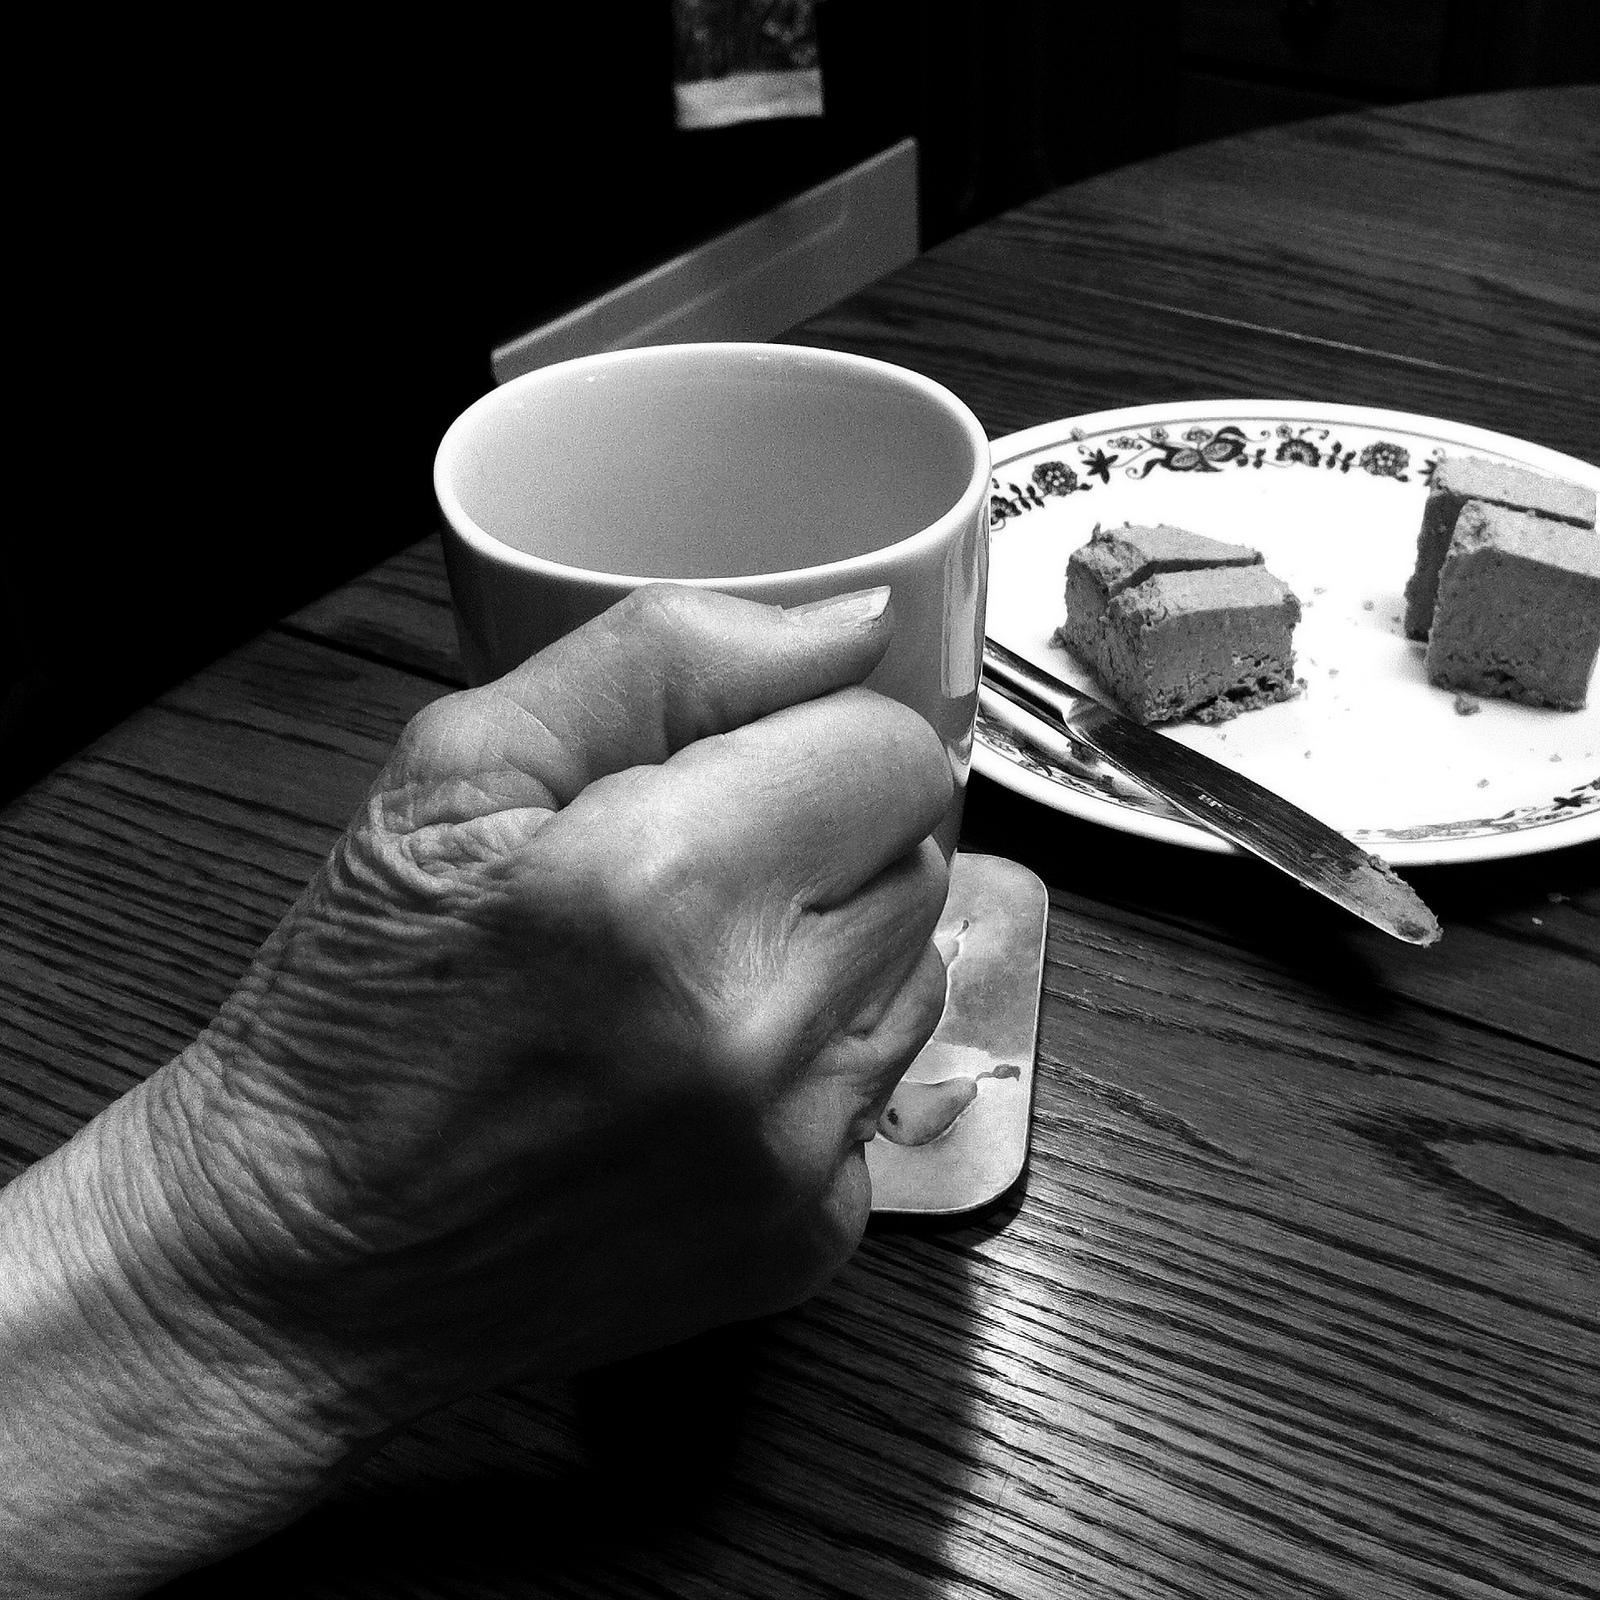 This is my paternal grandmother's hand with some tea a few years ago.